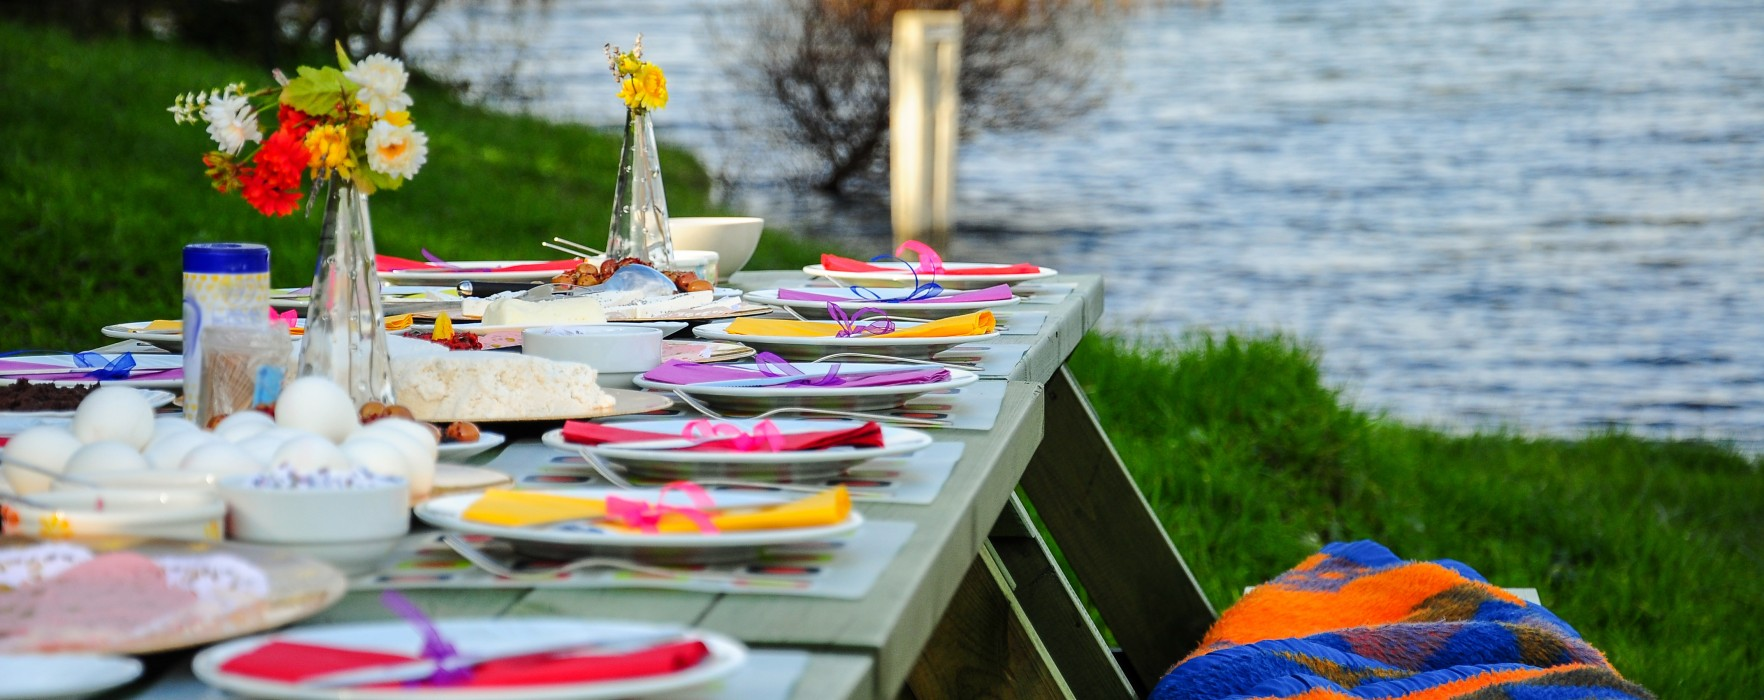 Party Time Easy Outdoor Entertaining Tips Ideas